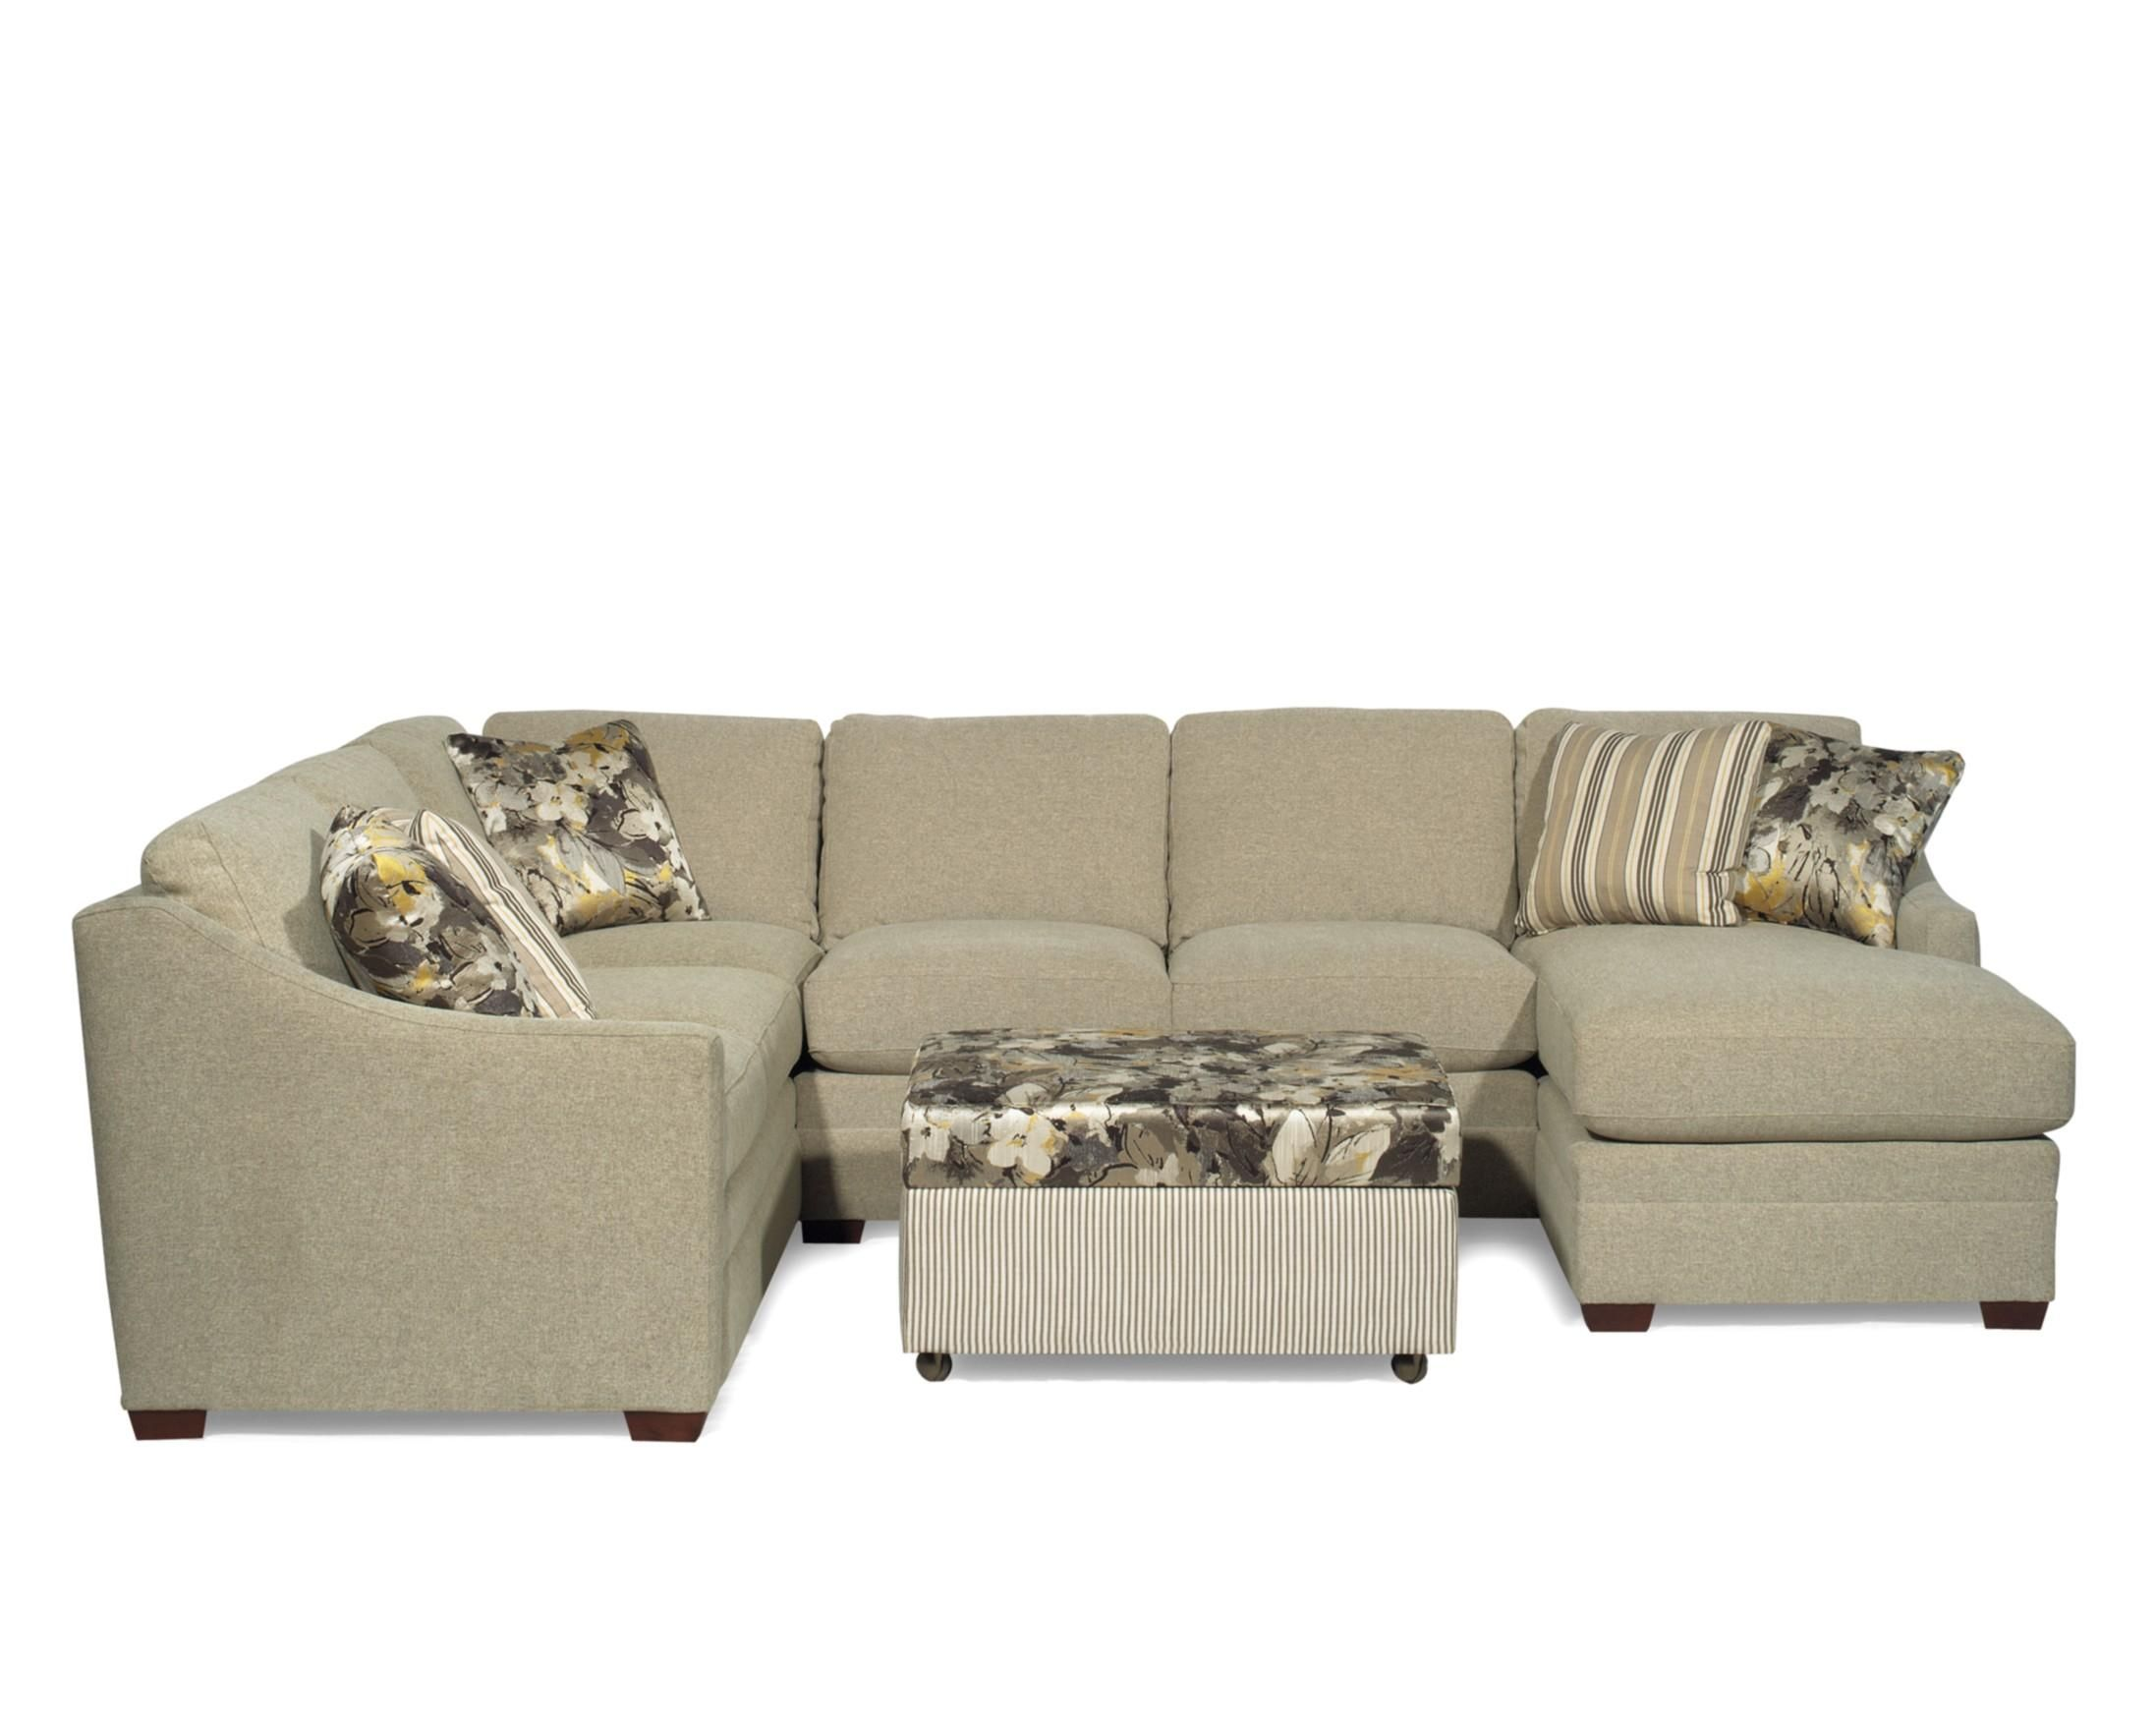 Custom collection customizable sectional with laf sofa w return by craftmaster at miskelly furniture